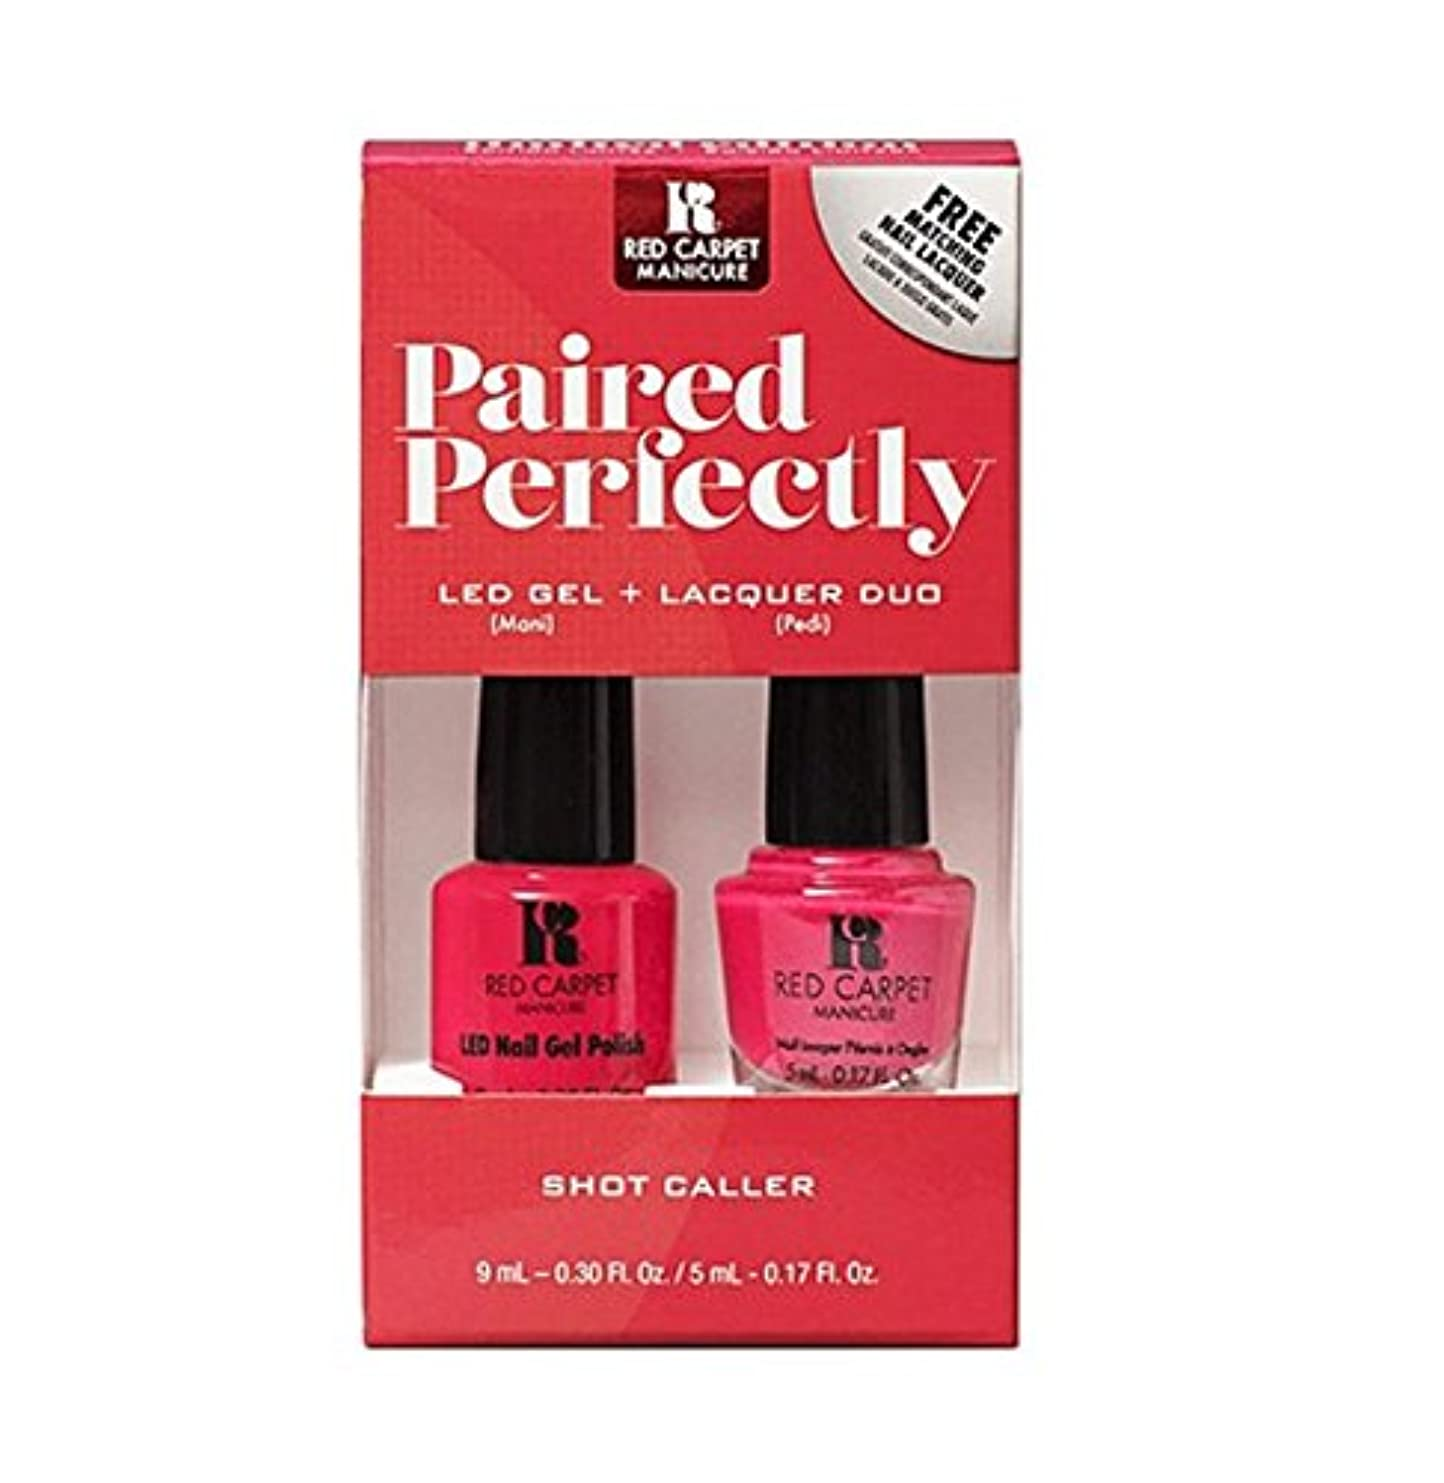 自伝レンチファウルRed Carpet Manicure - Paired Perfectly GEL & Lacquer DUO - Shot Caller